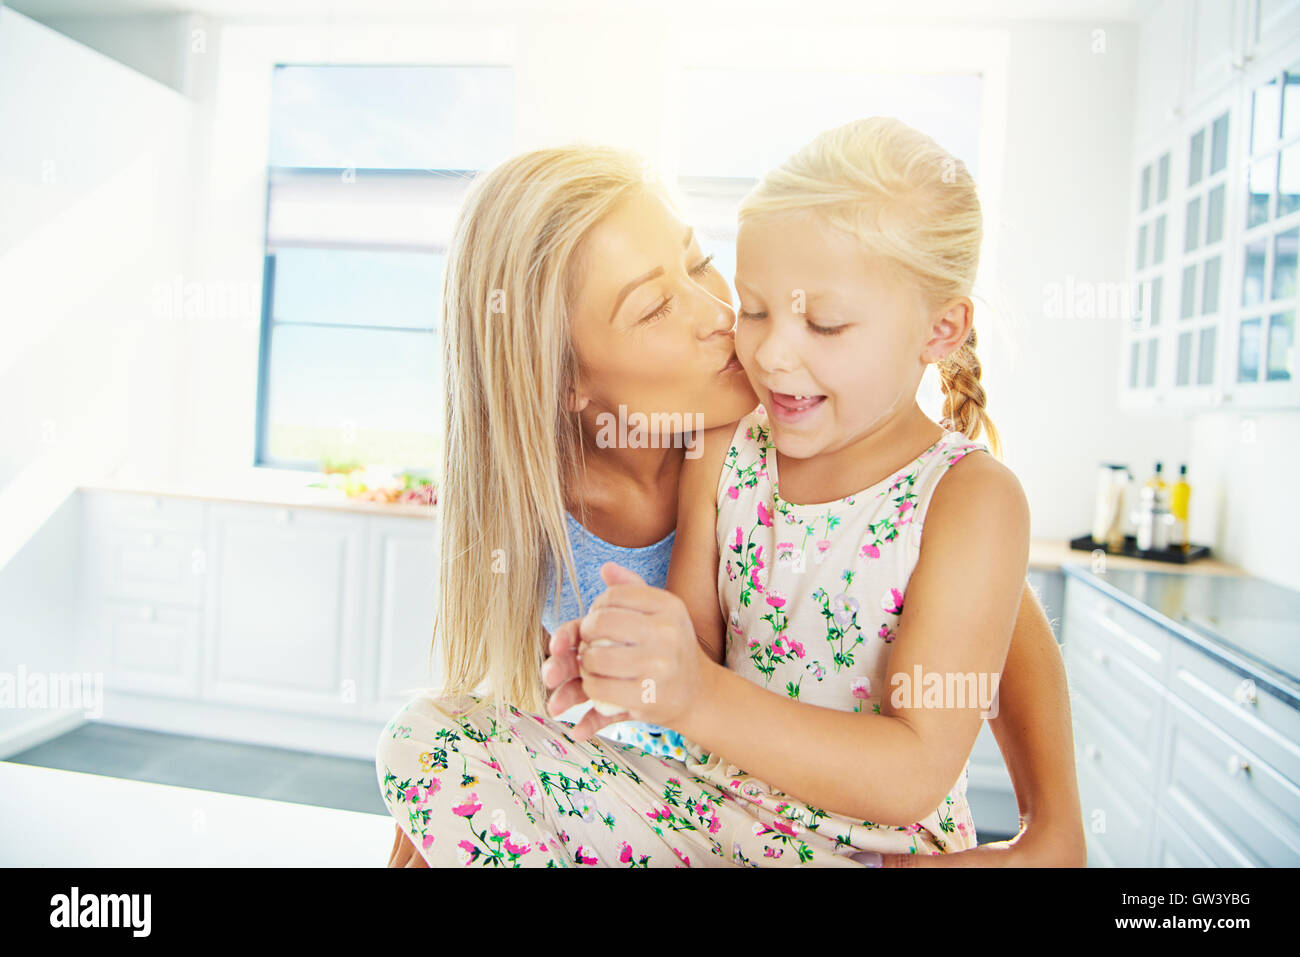 Beautiful young blond mother kissing daughter in ponytails and dress while she plays with bread dough - Stock Image